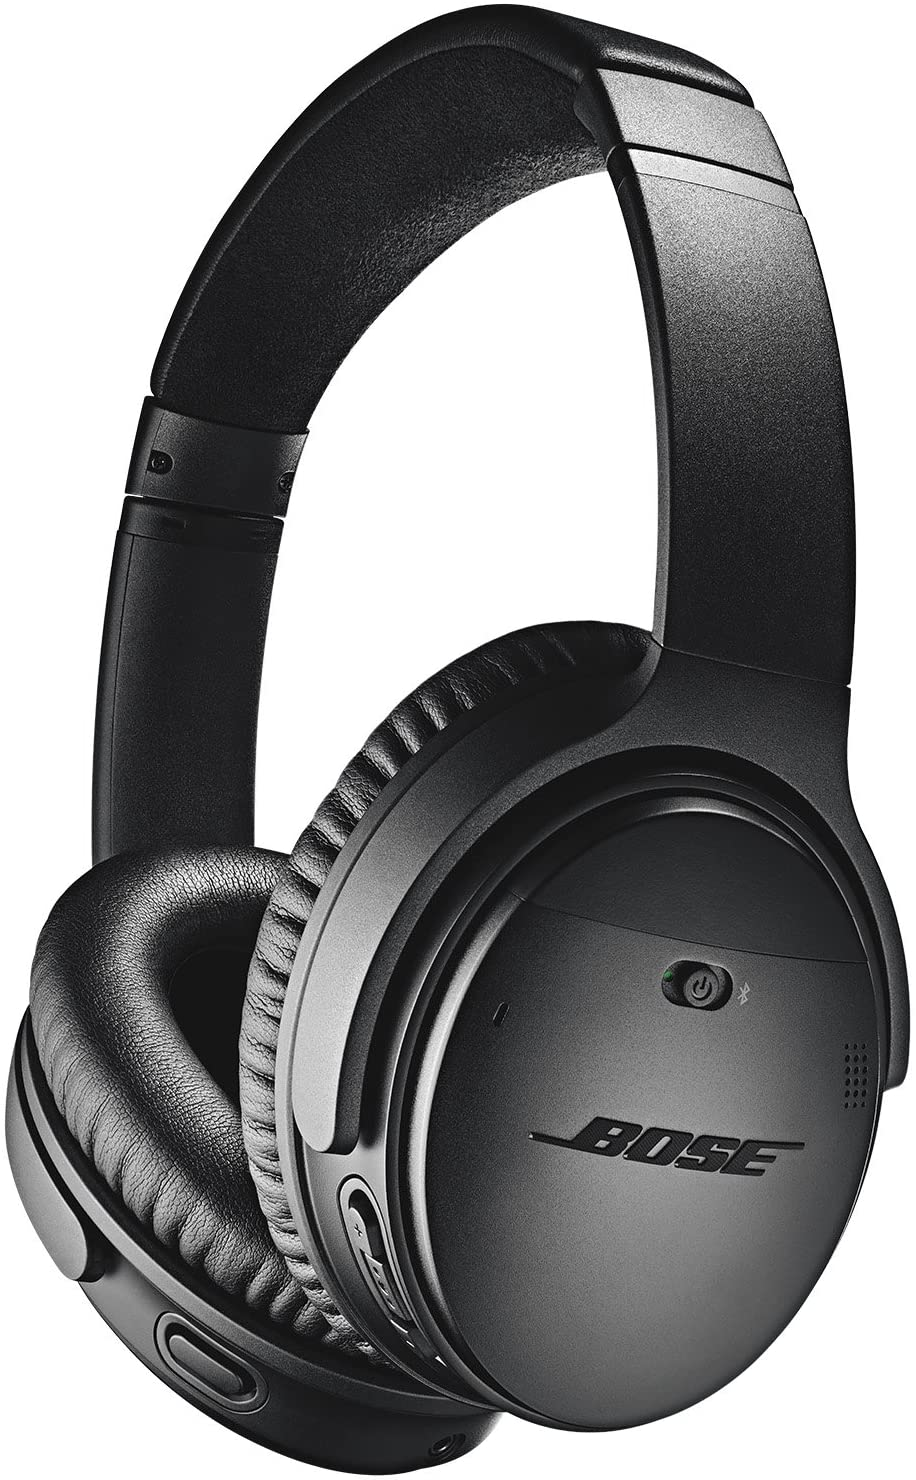 French Favorites Amazon Prime Day Bose noise cancelling headphones